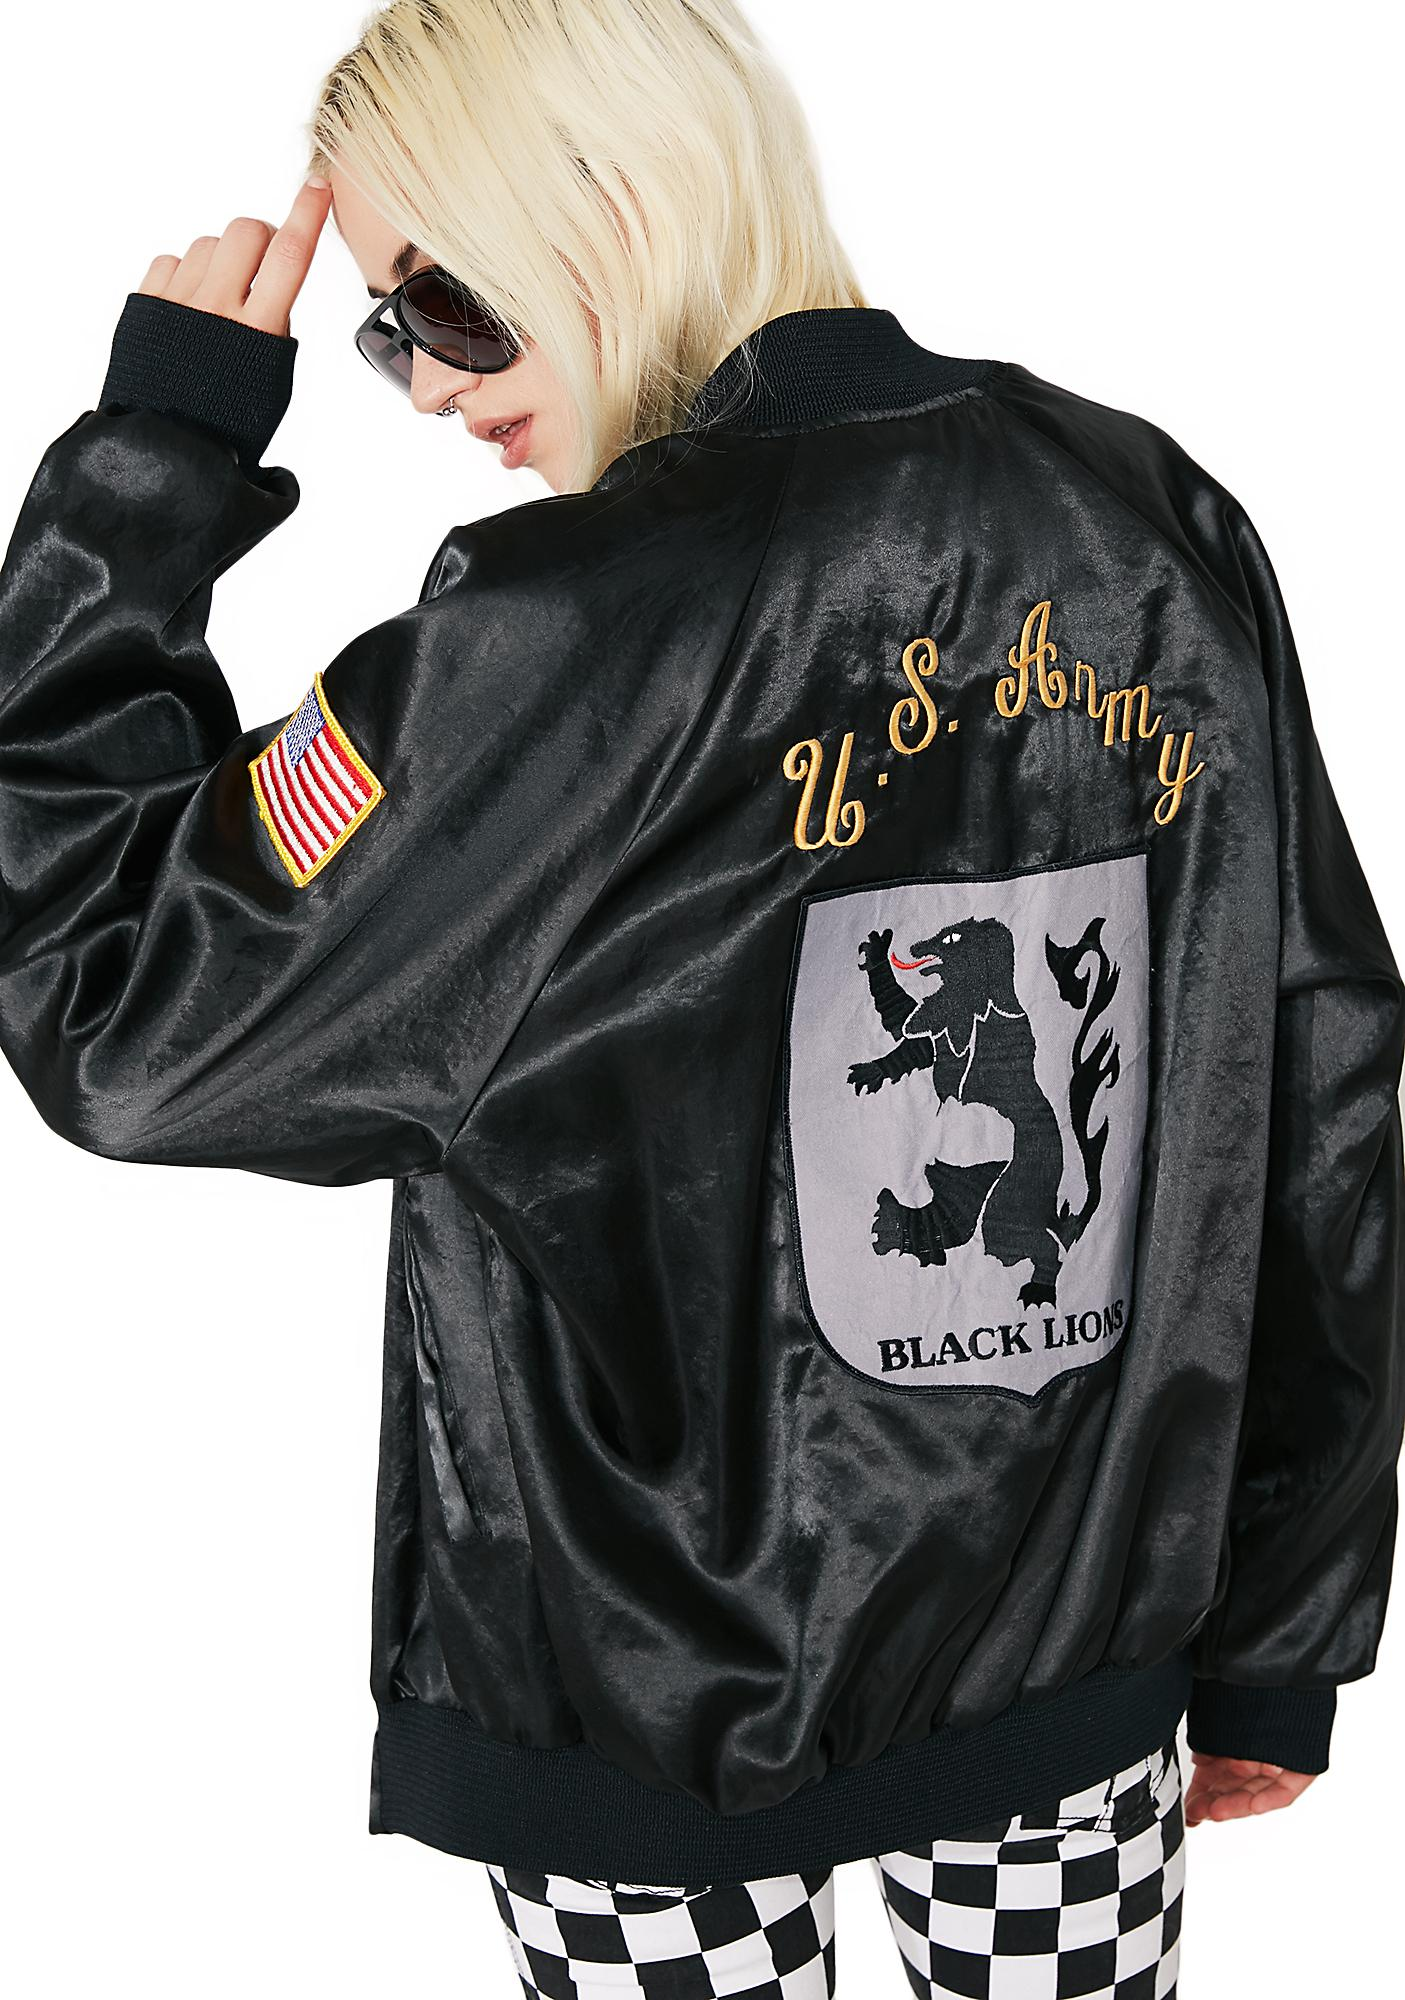 Vintage US Army Black Lions Bomber Jacket